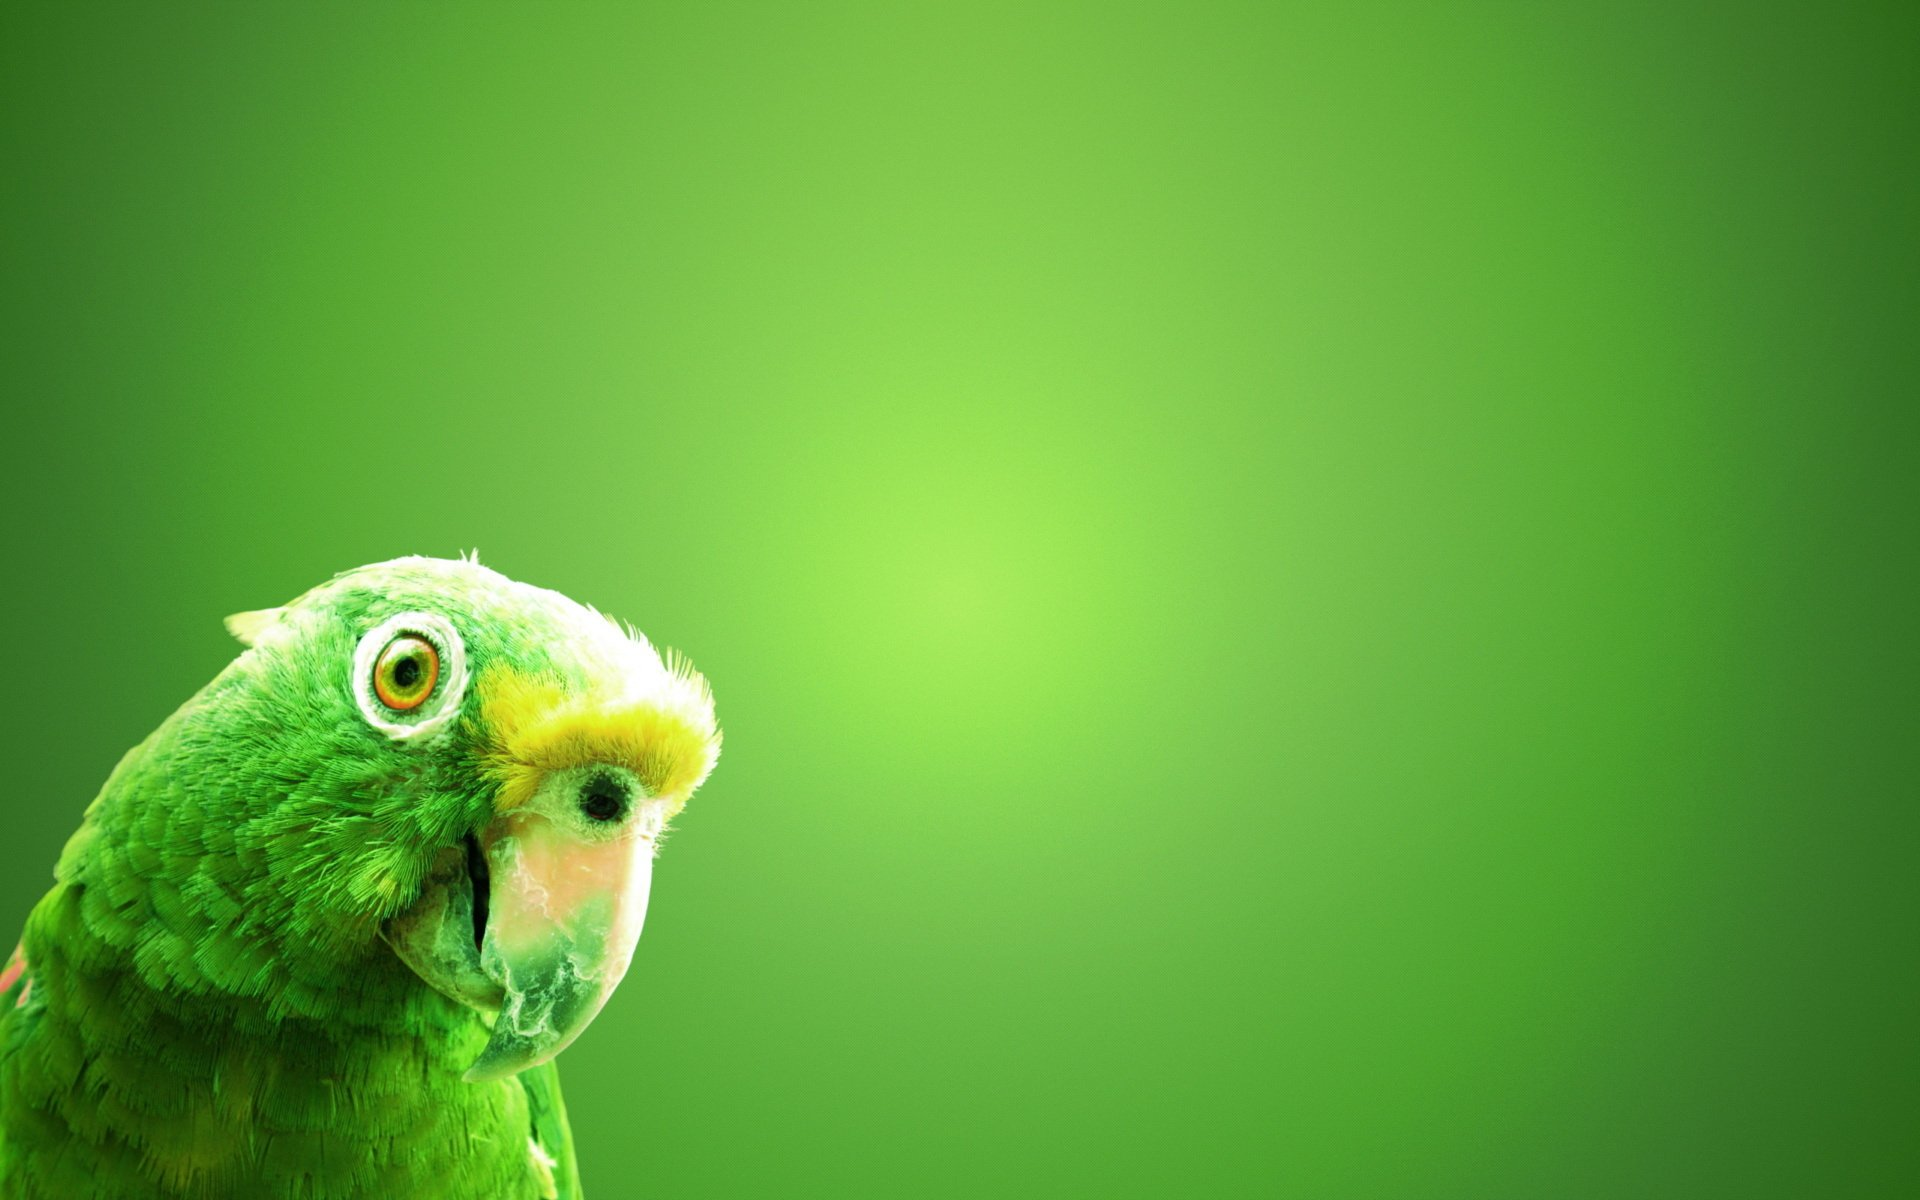 Parrot hd wallpaper background image 1920x1200 id - Animal and bird hd wallpaper ...